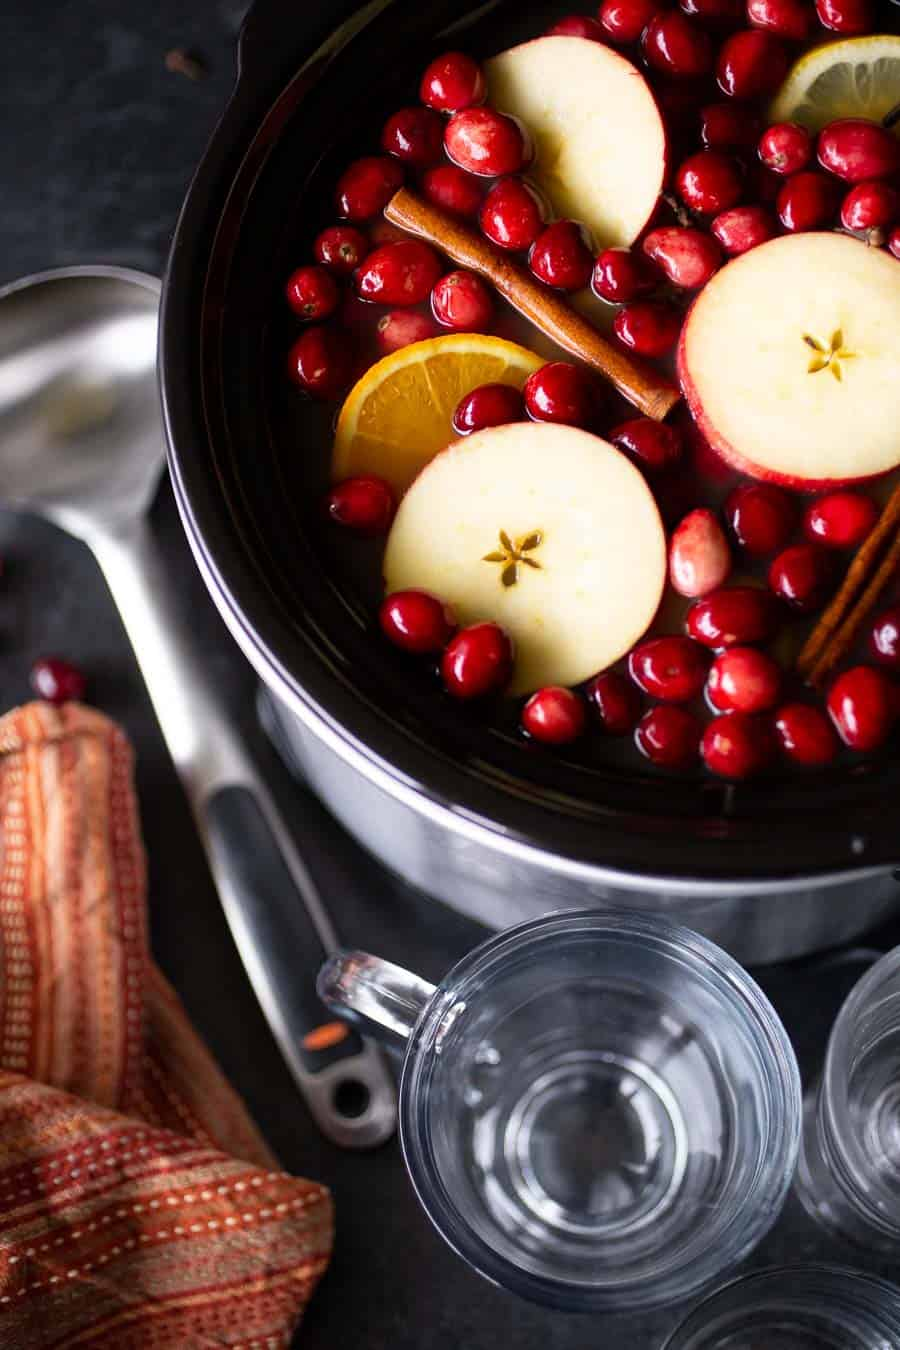 Using a slow cooker for this classic cold-weather mulled cider recipe allows you to prep, pre-make, and thenbe fully present with your family and friends. The slow cooker keeps the hot apple cider warm (and mulling) in the background while you get to sit back and enjoy some downtime with the people you love. #mulledcider #applecider #fallrecipes #thanksgivingrecipes #christmasdrinks #crockpotrecipes #slowcooker #slowcookerrecipes #recipes #drinkrecipes #easypeasydrinks #cider #mulledcider #applecider *My family LOVES this cider